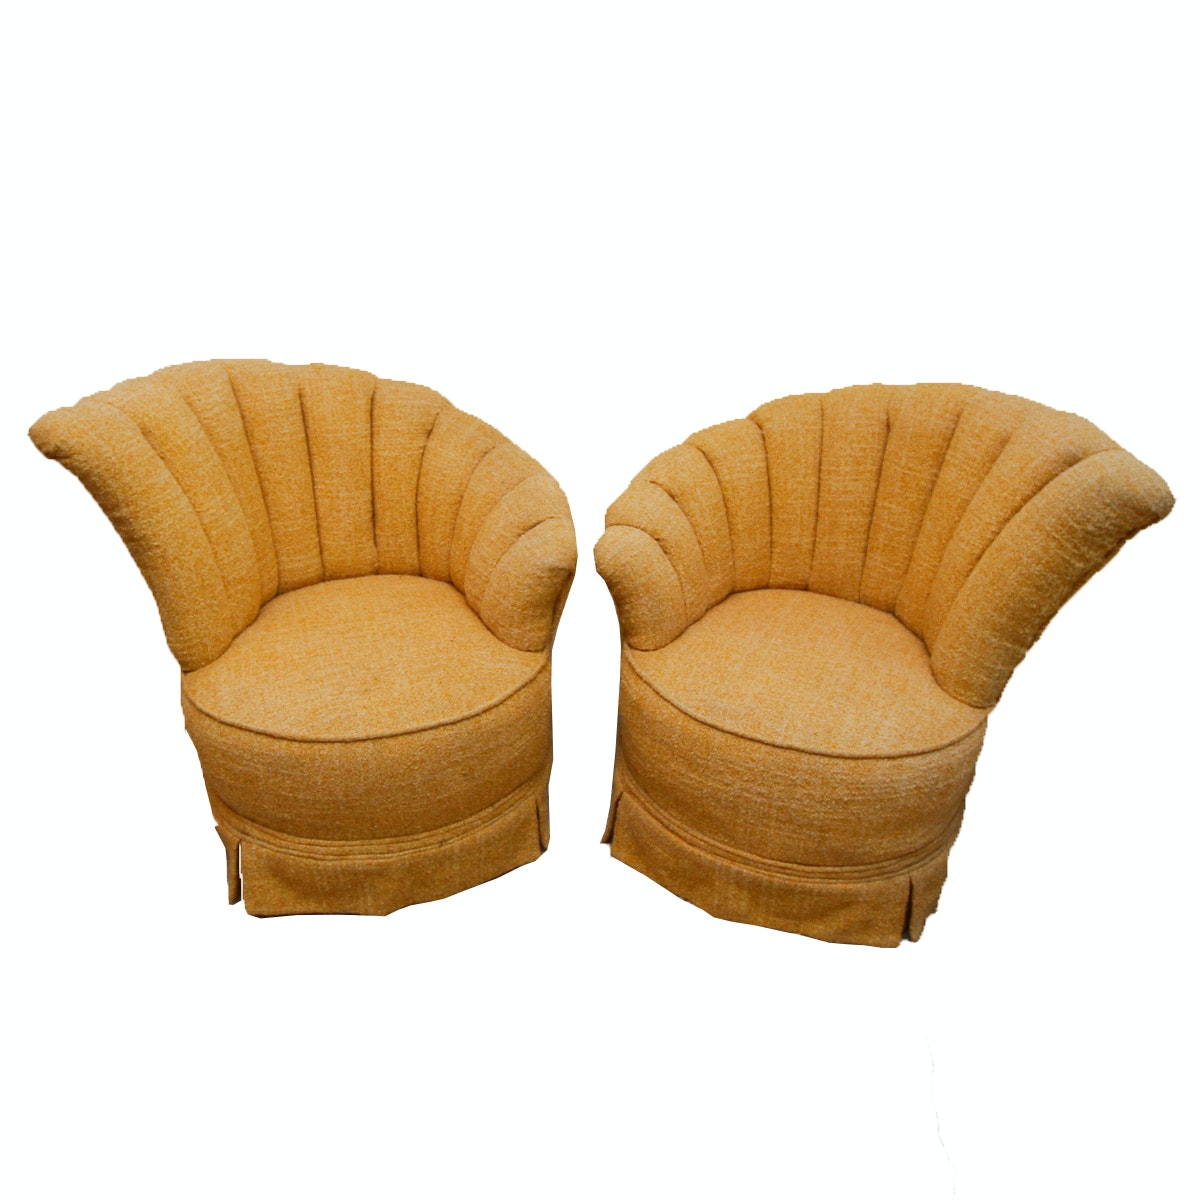 Pair of Vintage Hollywood Regency Style Accent Chairs